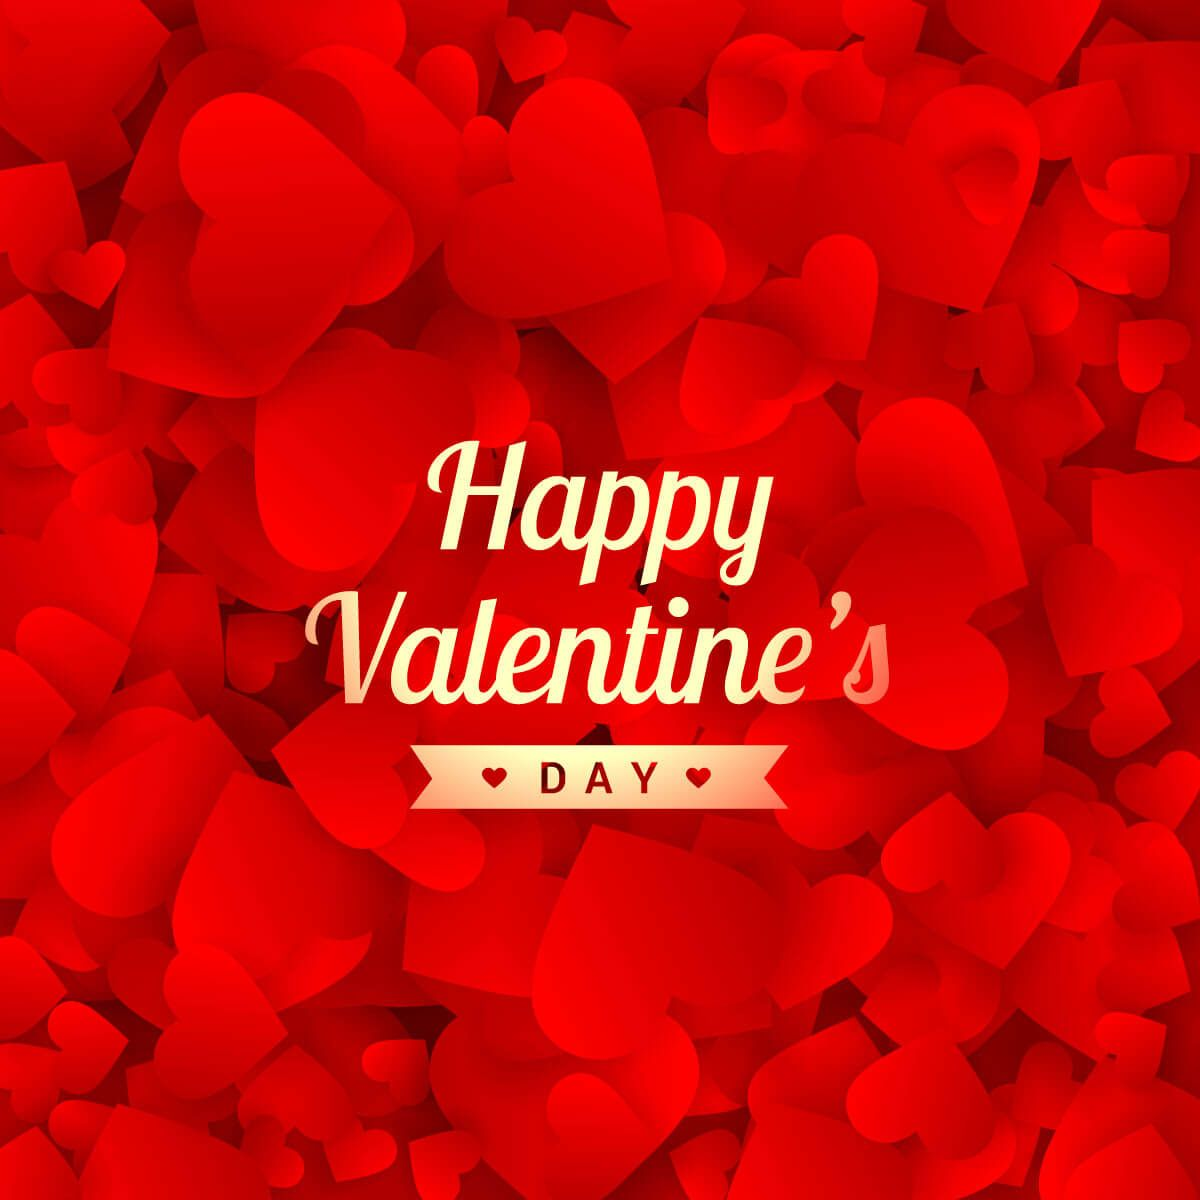 Valentines Day Pictures Images Photos Download Free Happy Valentines Day Wishes Happy Valentines Day Pictures Happy Valentines Day Photos